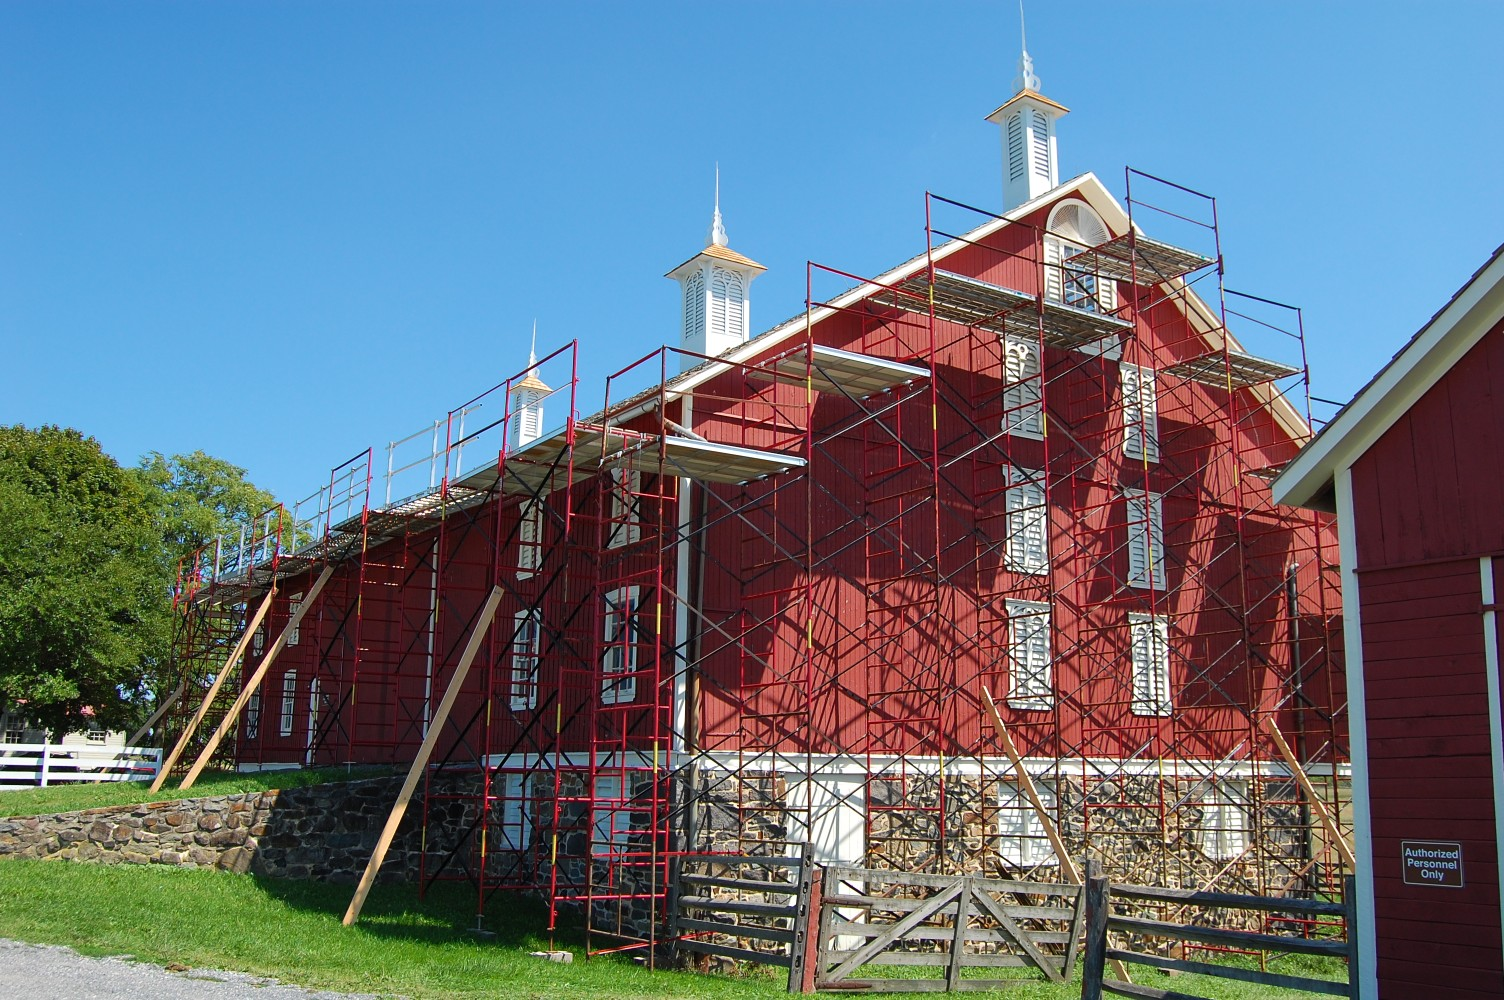 Codori Barn Restoration Roofing Progress Gettysburg Daily